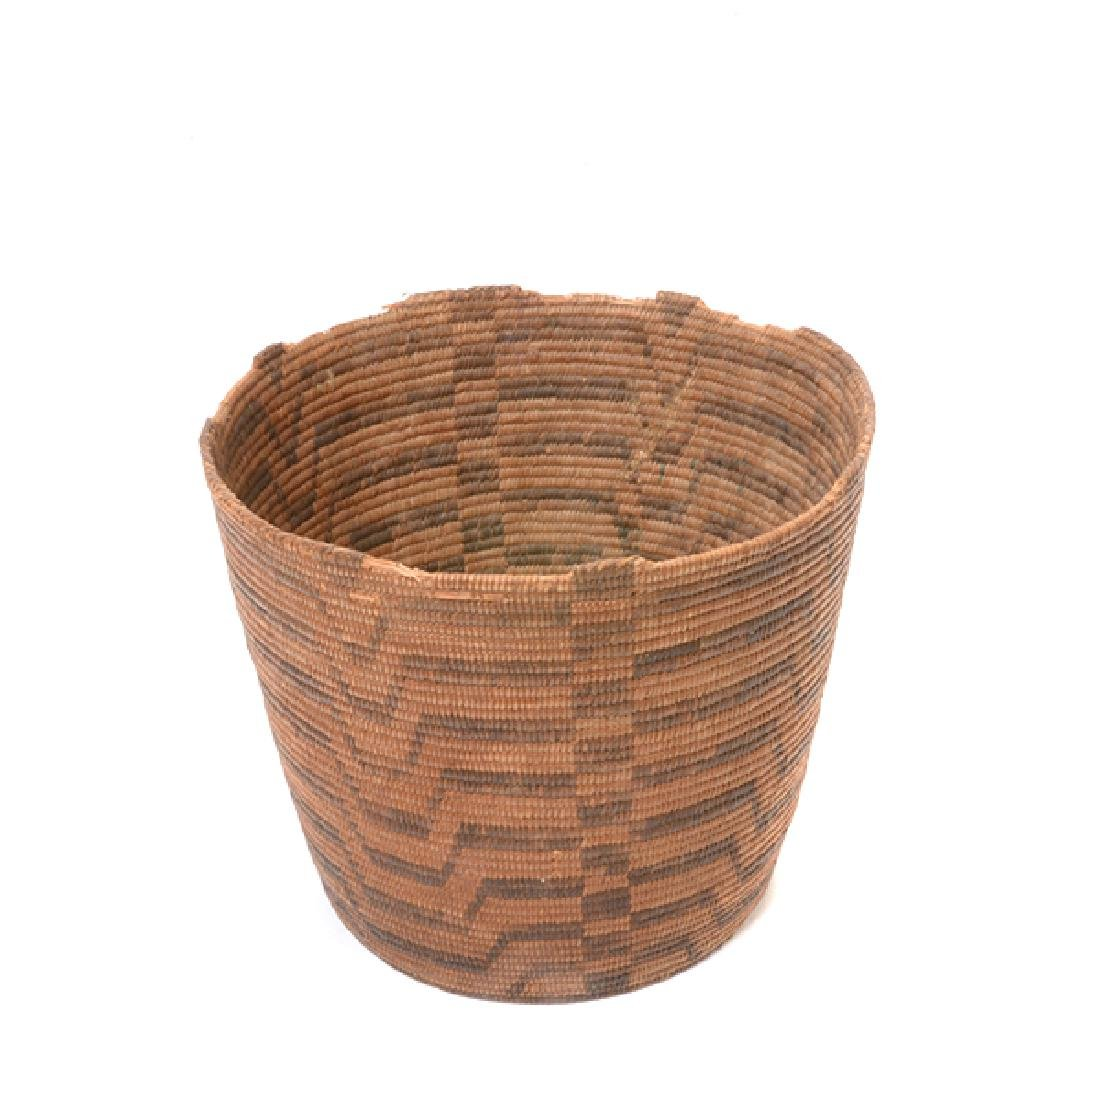 Three Native American Hand Woven Baskets - 7